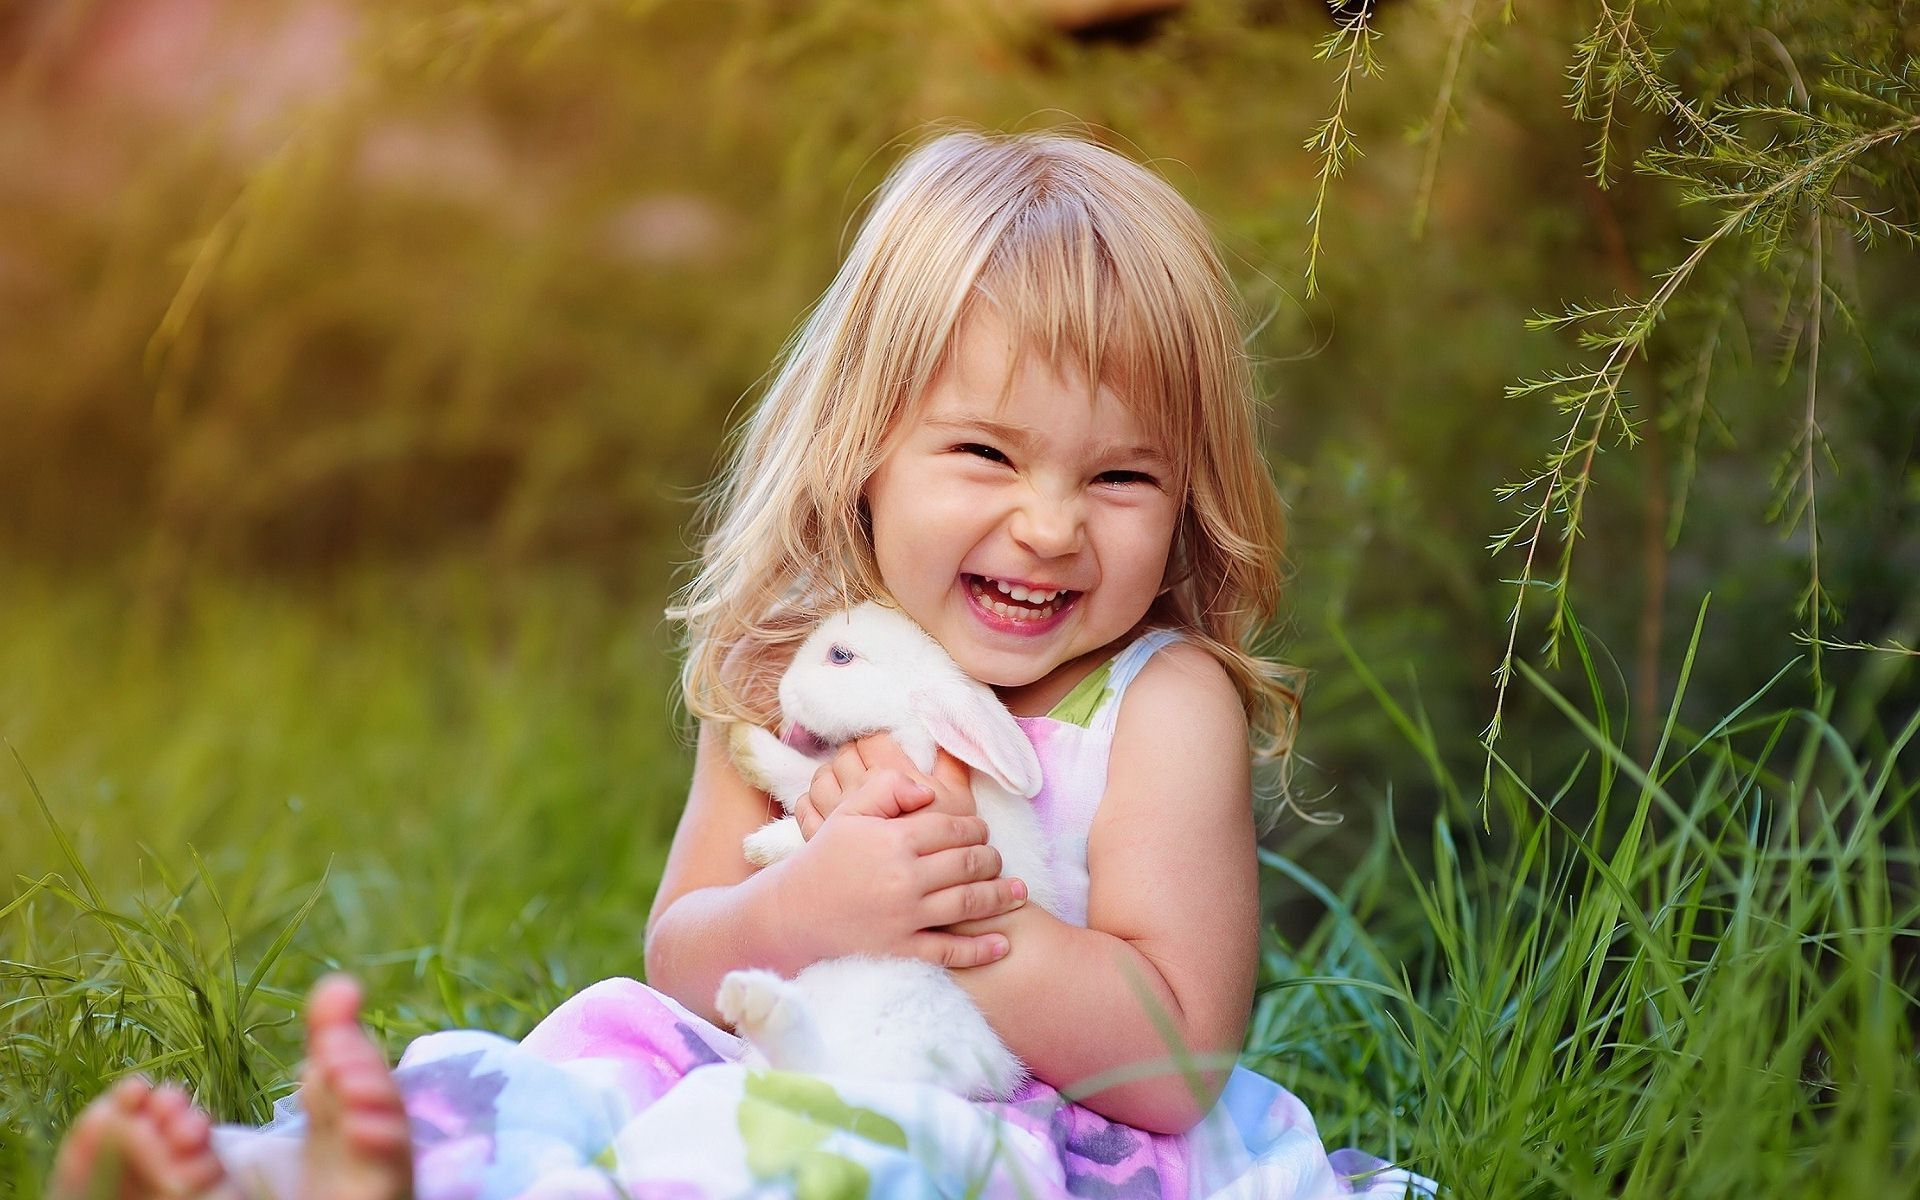 cute children wallpapers desktop - Kids Images Free Download